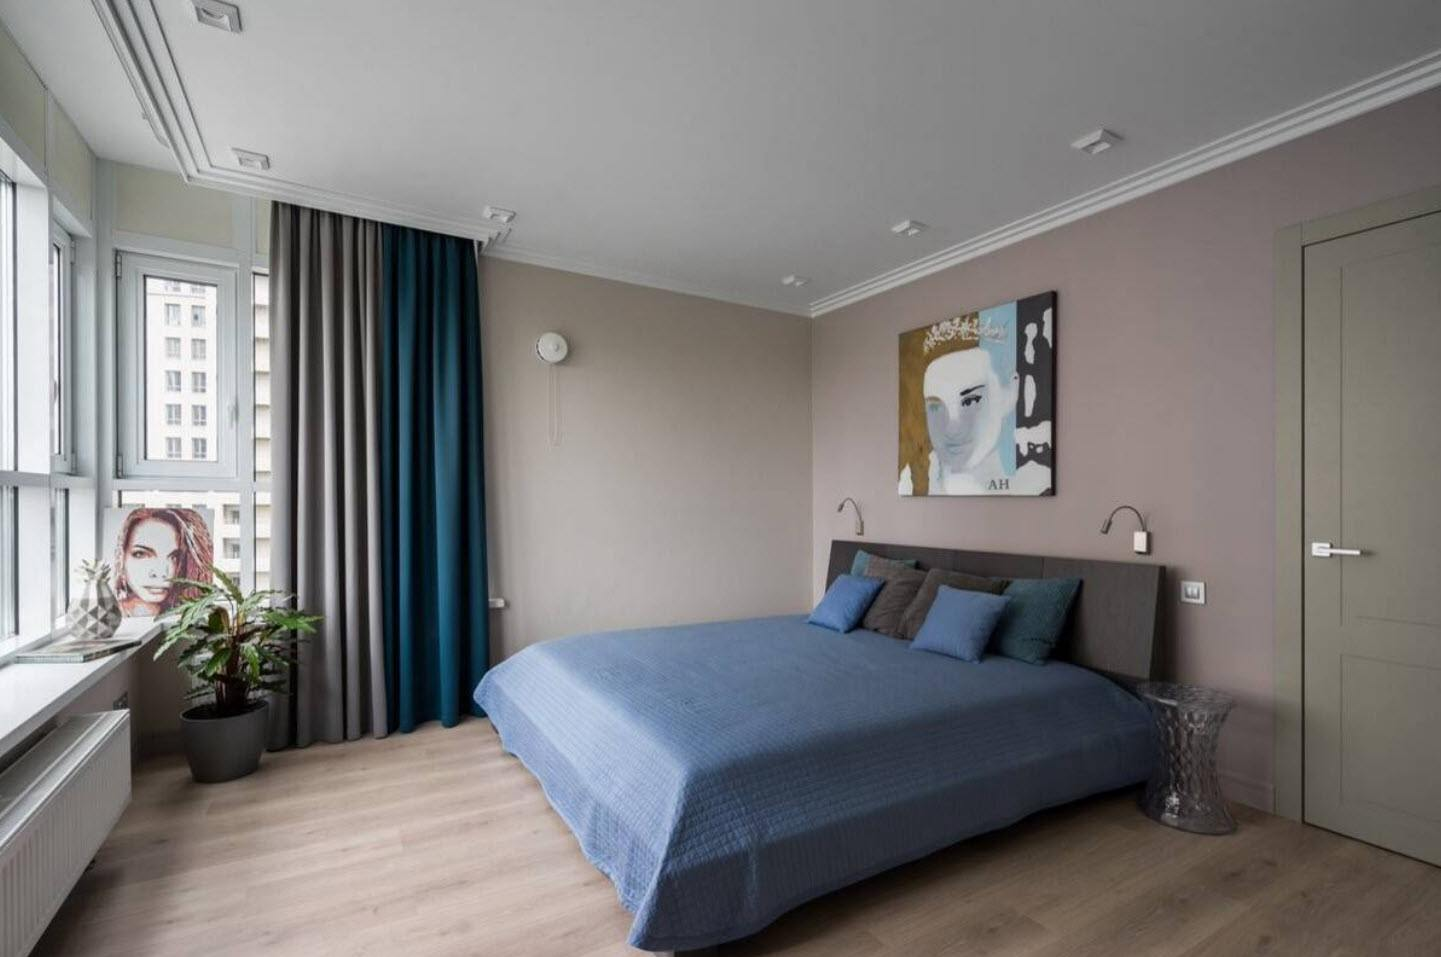 Boxed room with cozy atmosphere and beige colored walls